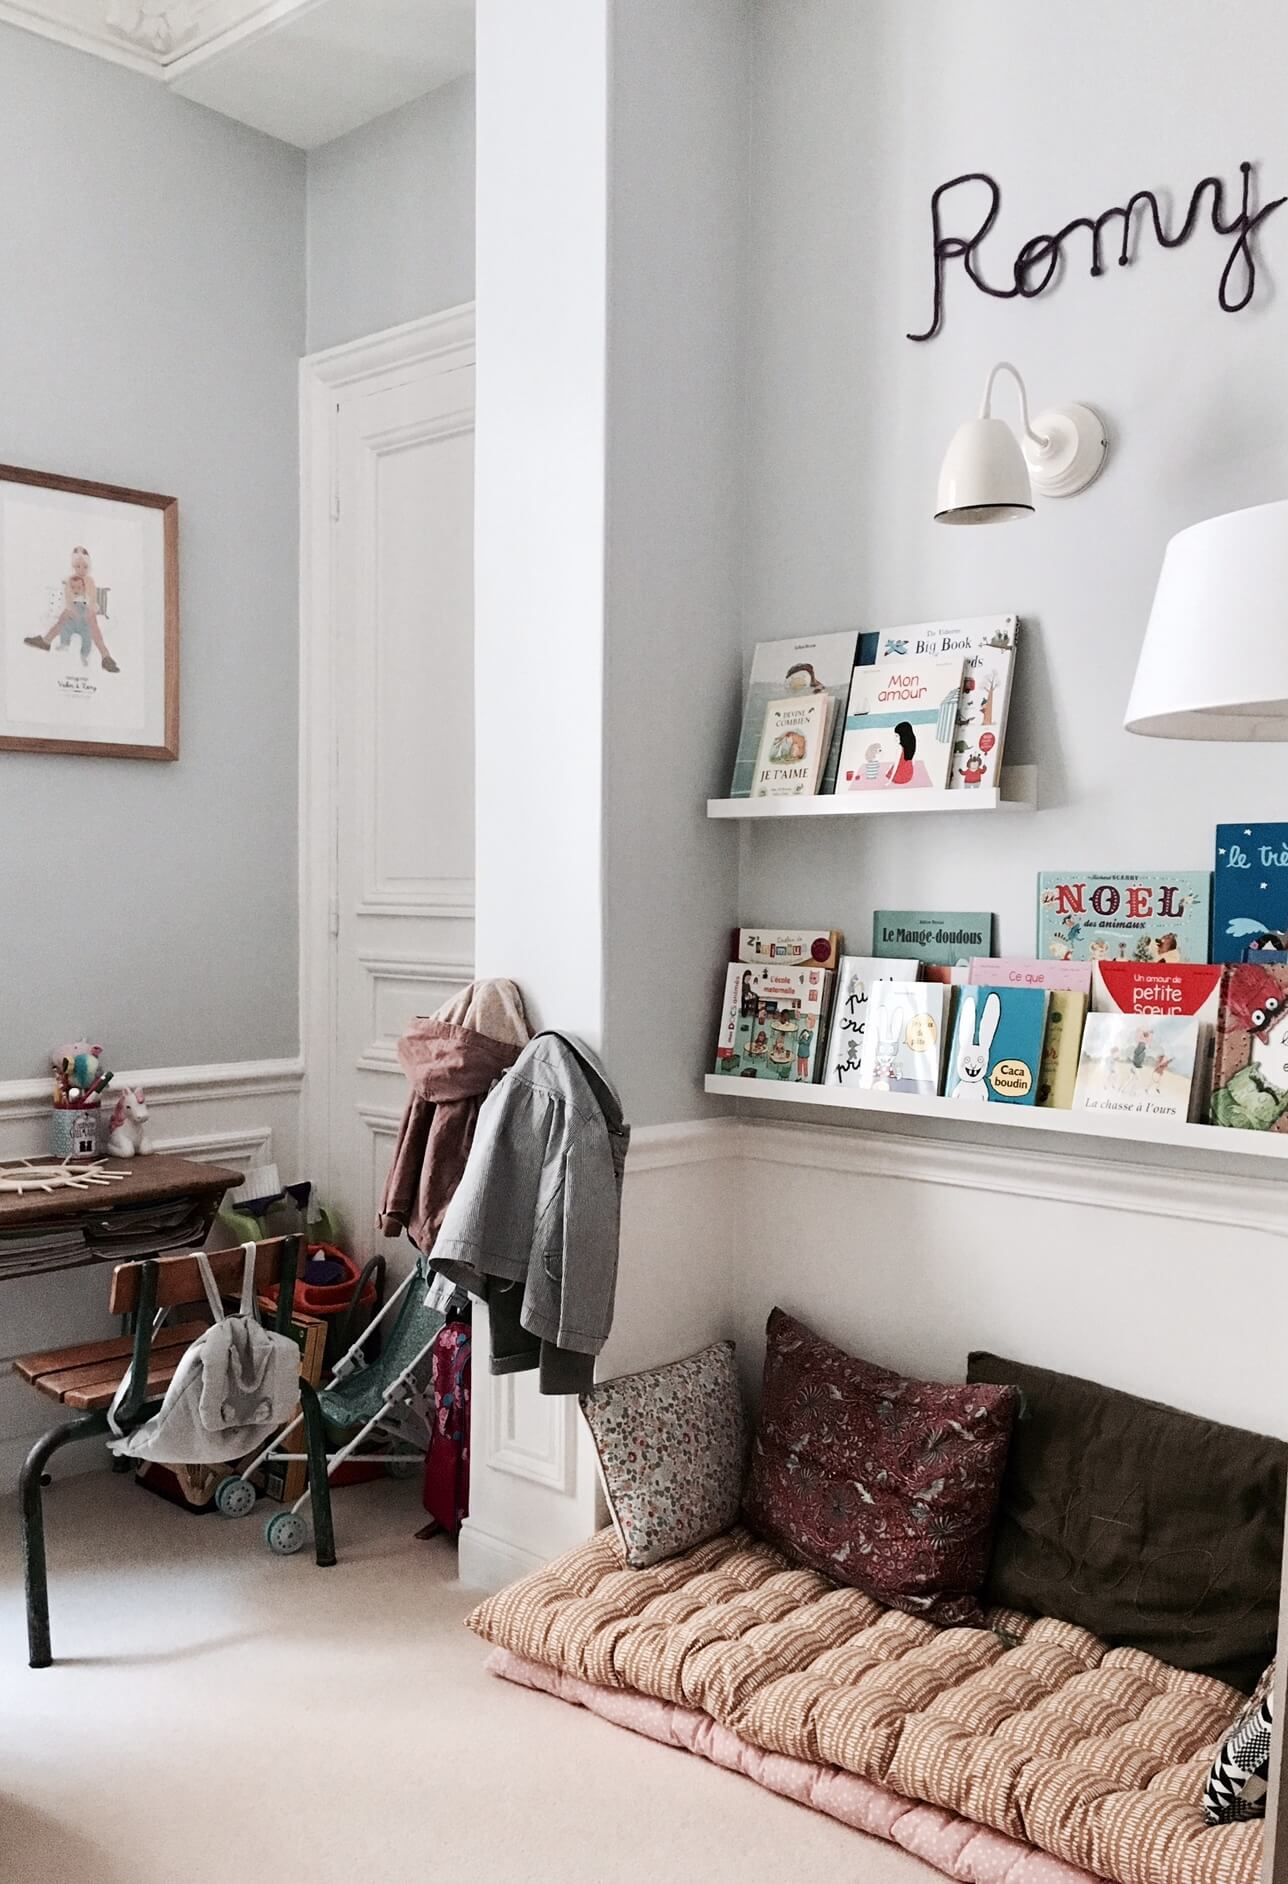 A dreamy family home in Paris